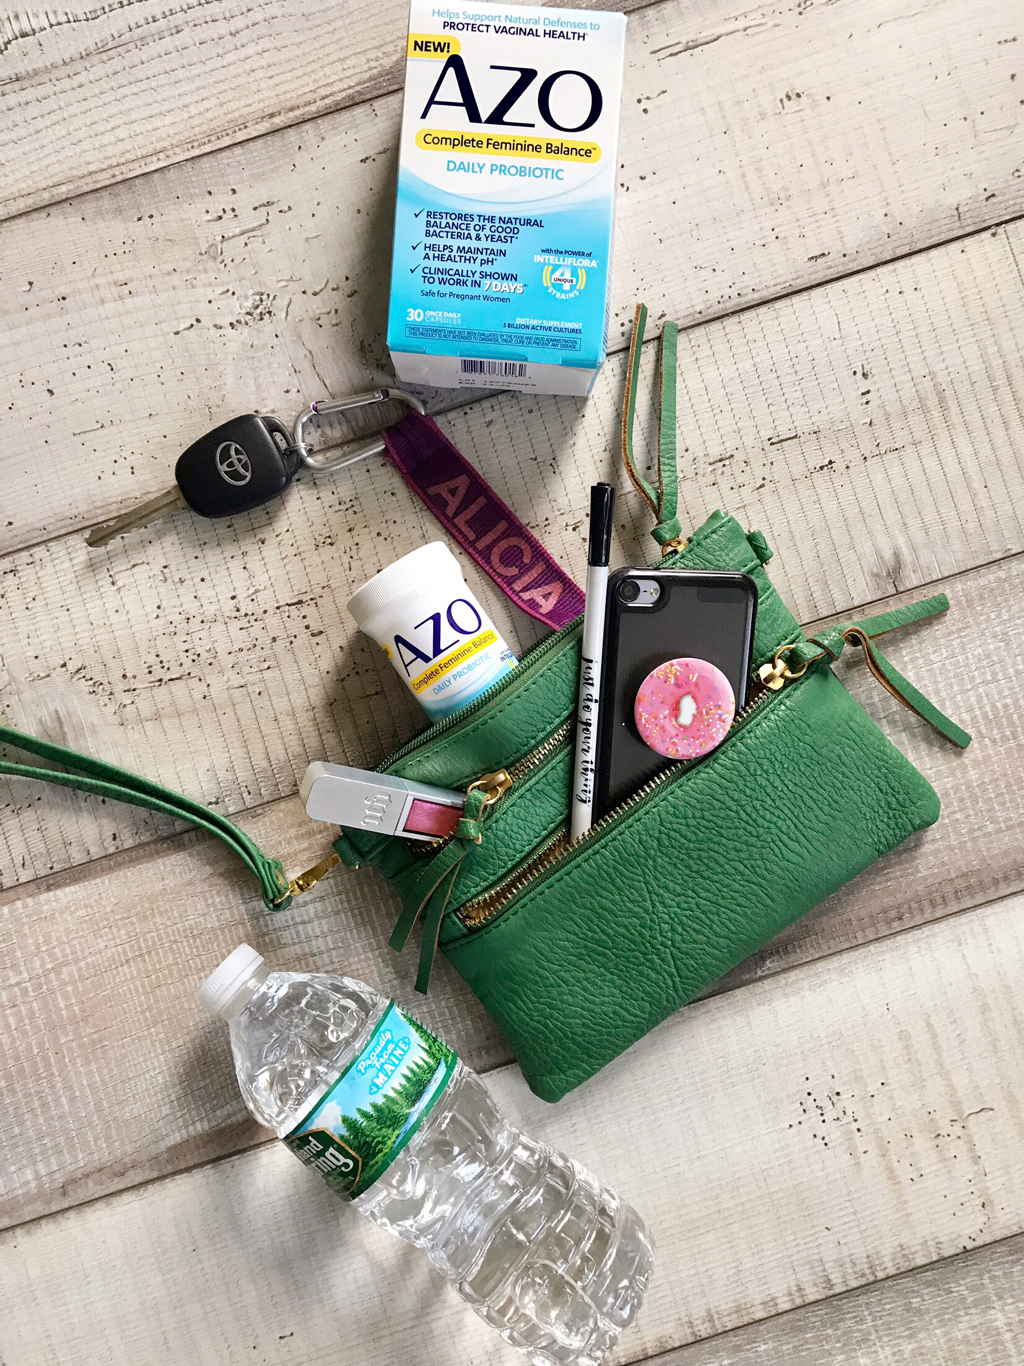 MY TOP 3 PRODUCT FOR HEALTHY FEMININE BALANCE #Sponsored #OwnYourDay #AliciaEverAfterBlog